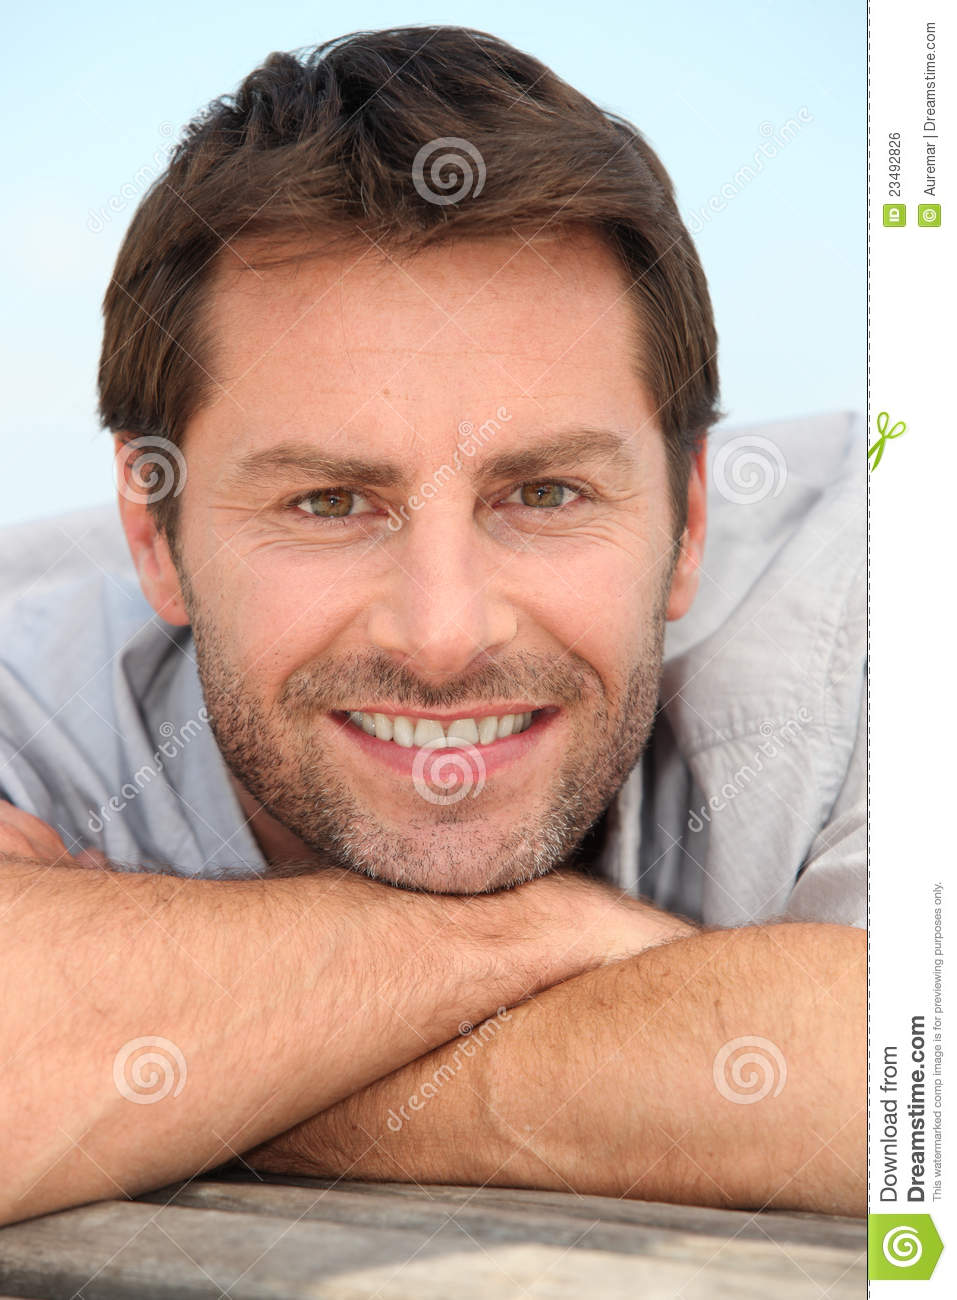 Smiling man with stubble